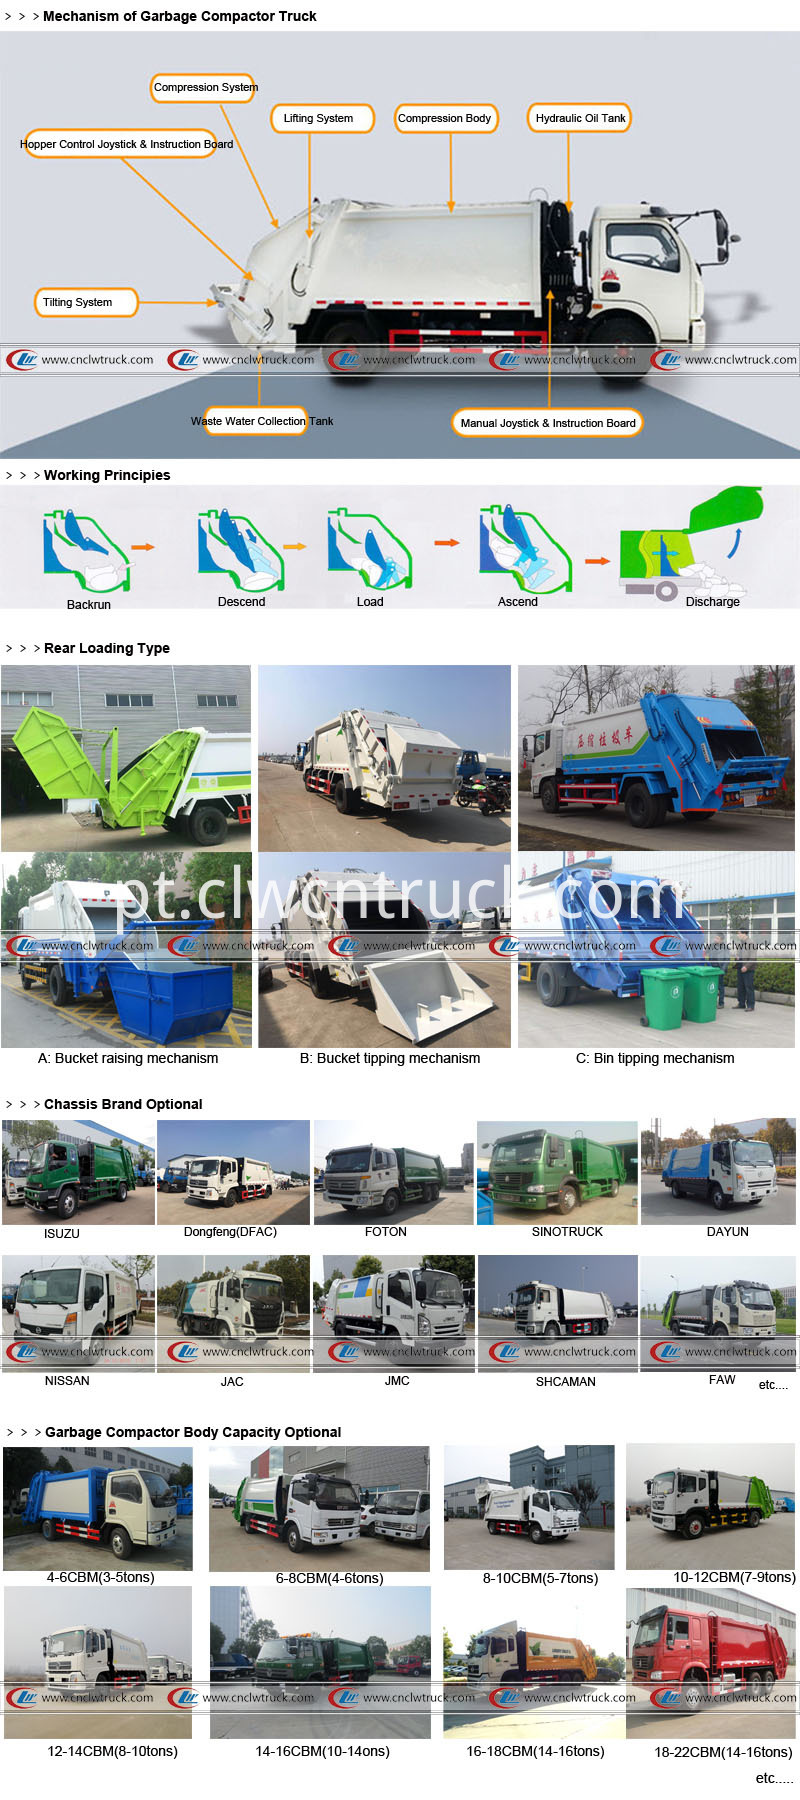 1 Garbage Compactor Truck Structure Logo